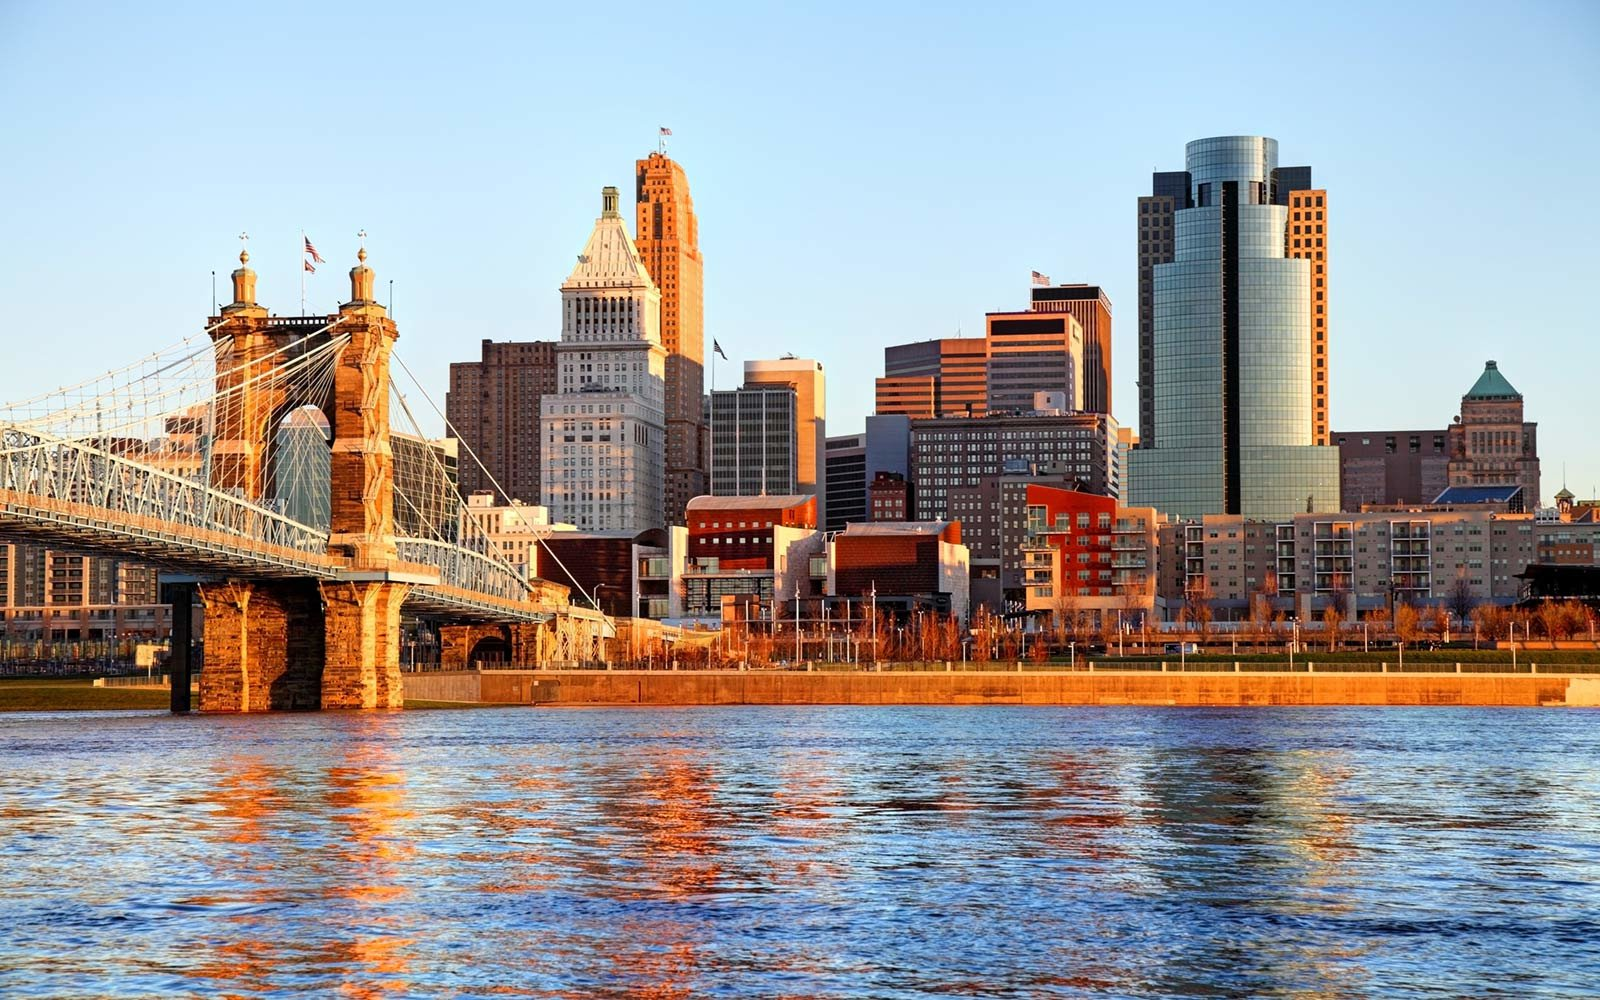 Cincinnati, Ohio. My adopted home. The Queen City. Cincinnati continues to inspire me with its grit, its weirdness, and its ability to change. We have a long way to go, but Cincinnati has shown its ability to grow and strive towards something greater.